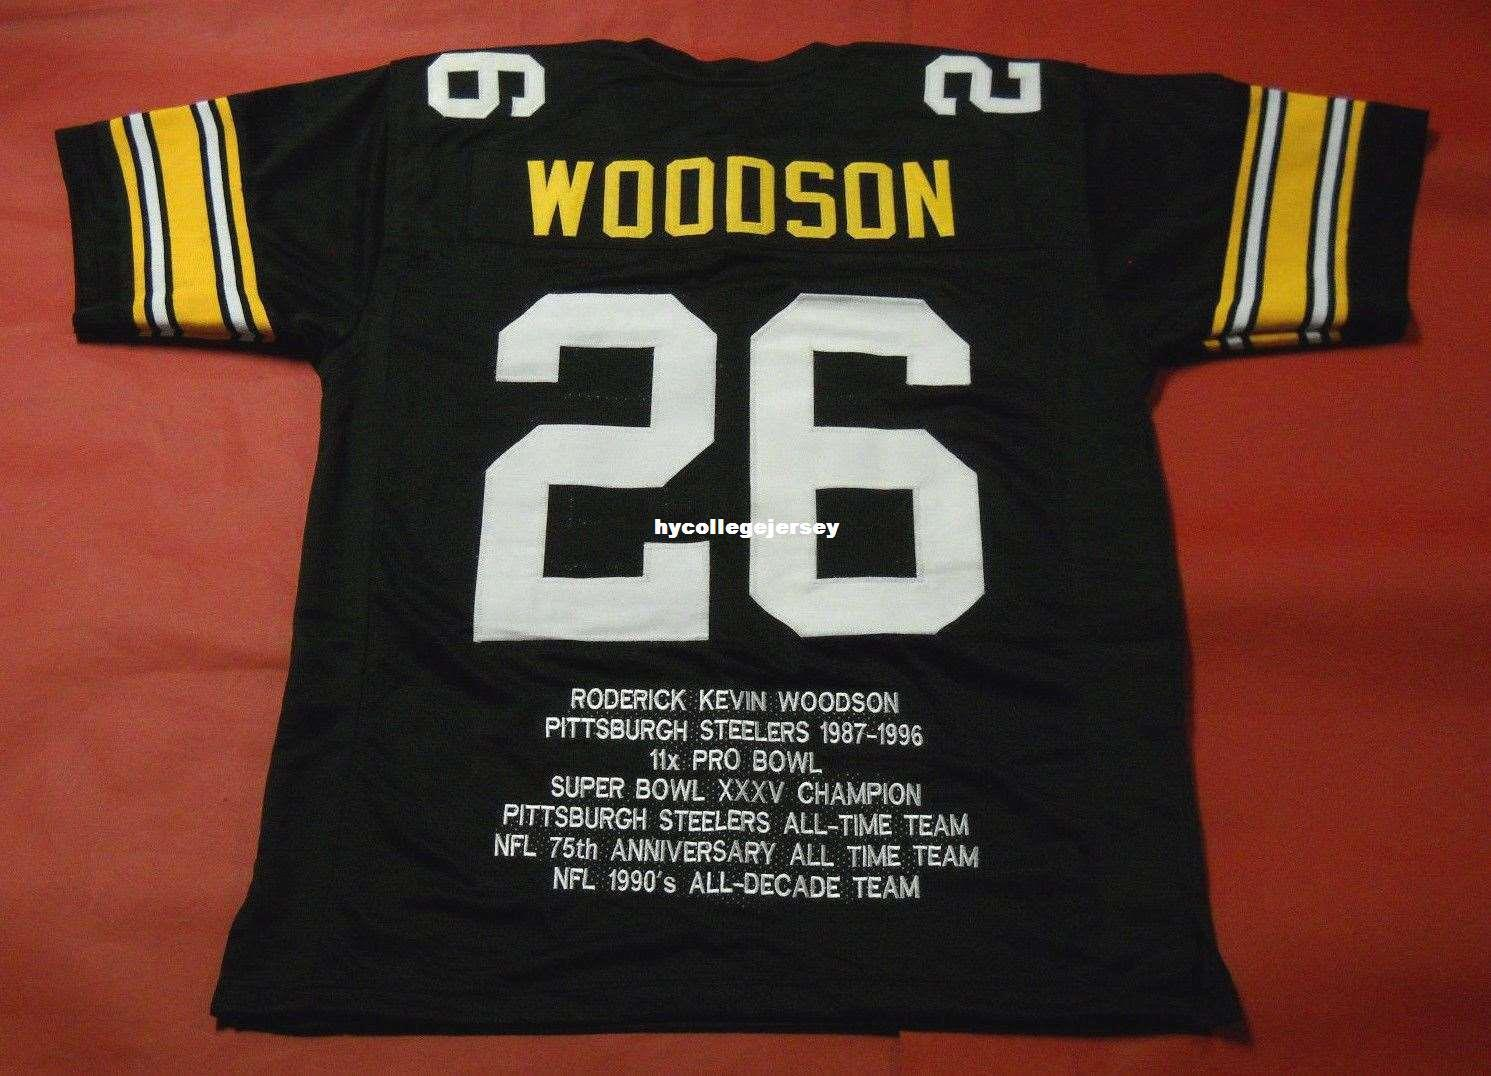 Cheap retro #26 ROD WOODSON CUSTOM STAT MITCHELL & NESS Jersey black Mens Stitching High-end Size S-5XL Football Jerseys College NCAA